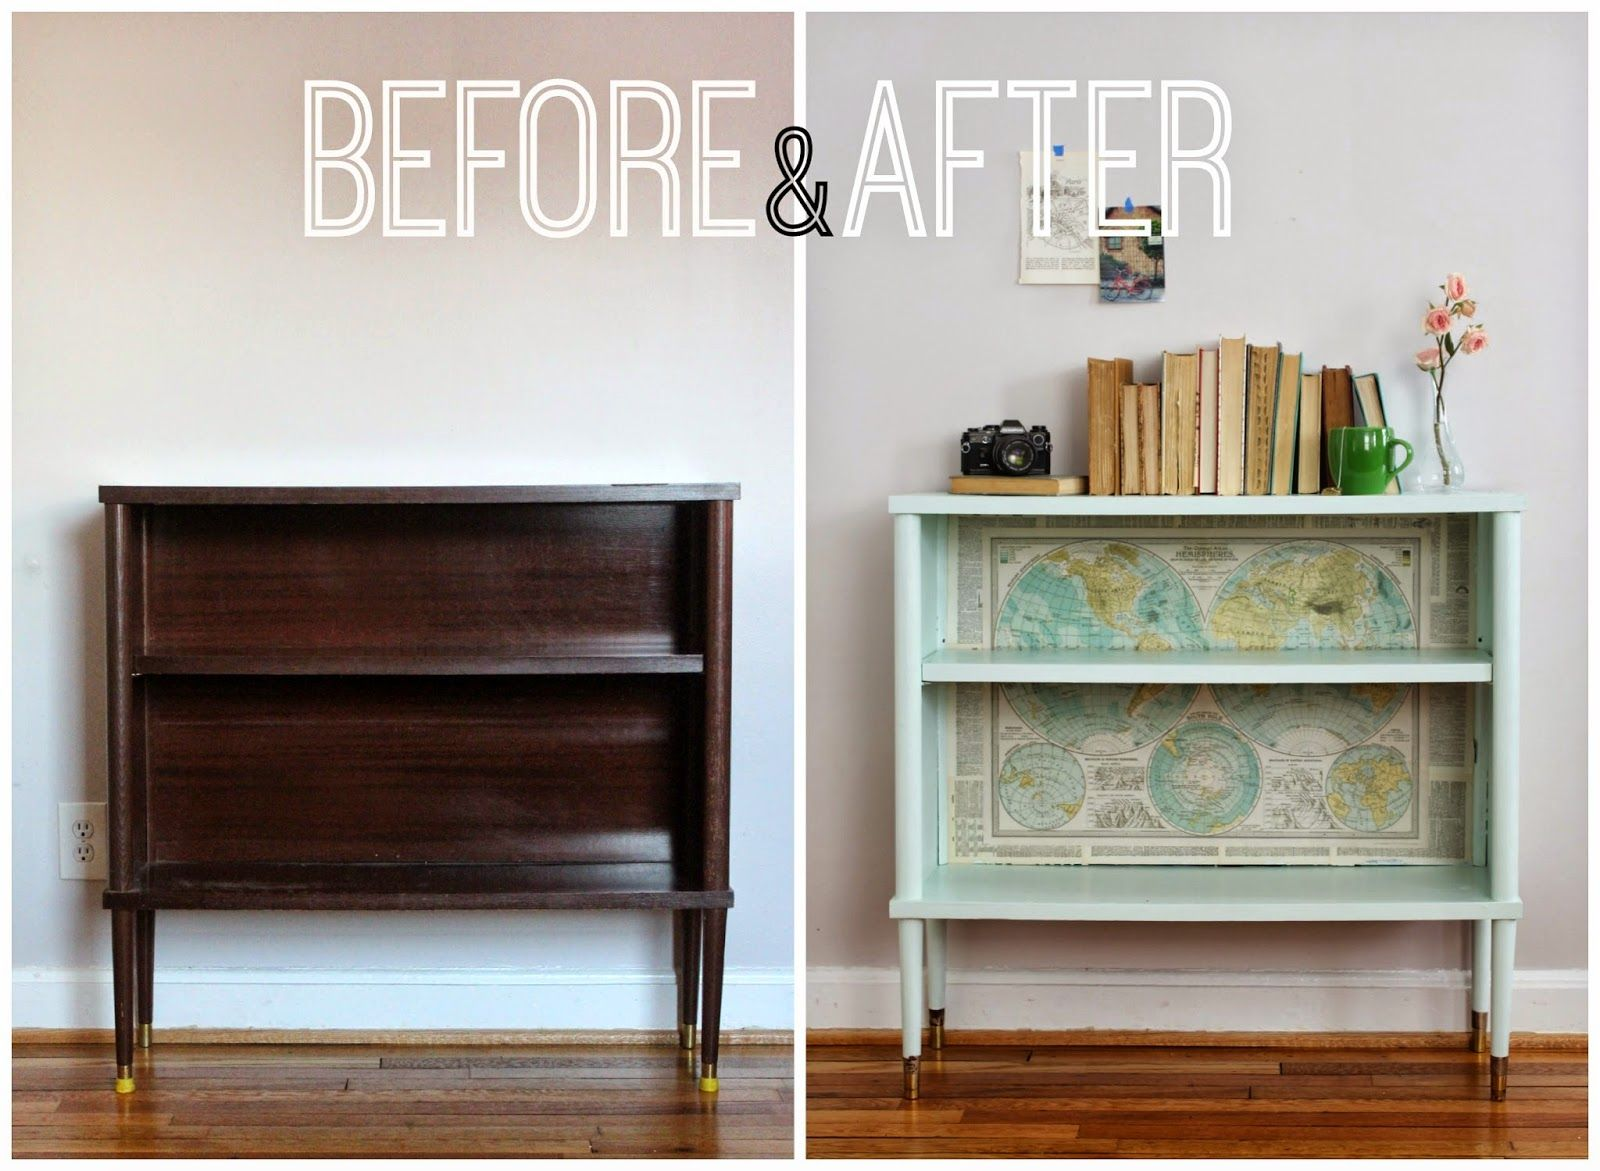 Mint green midcentury bookshelf with maps before u after